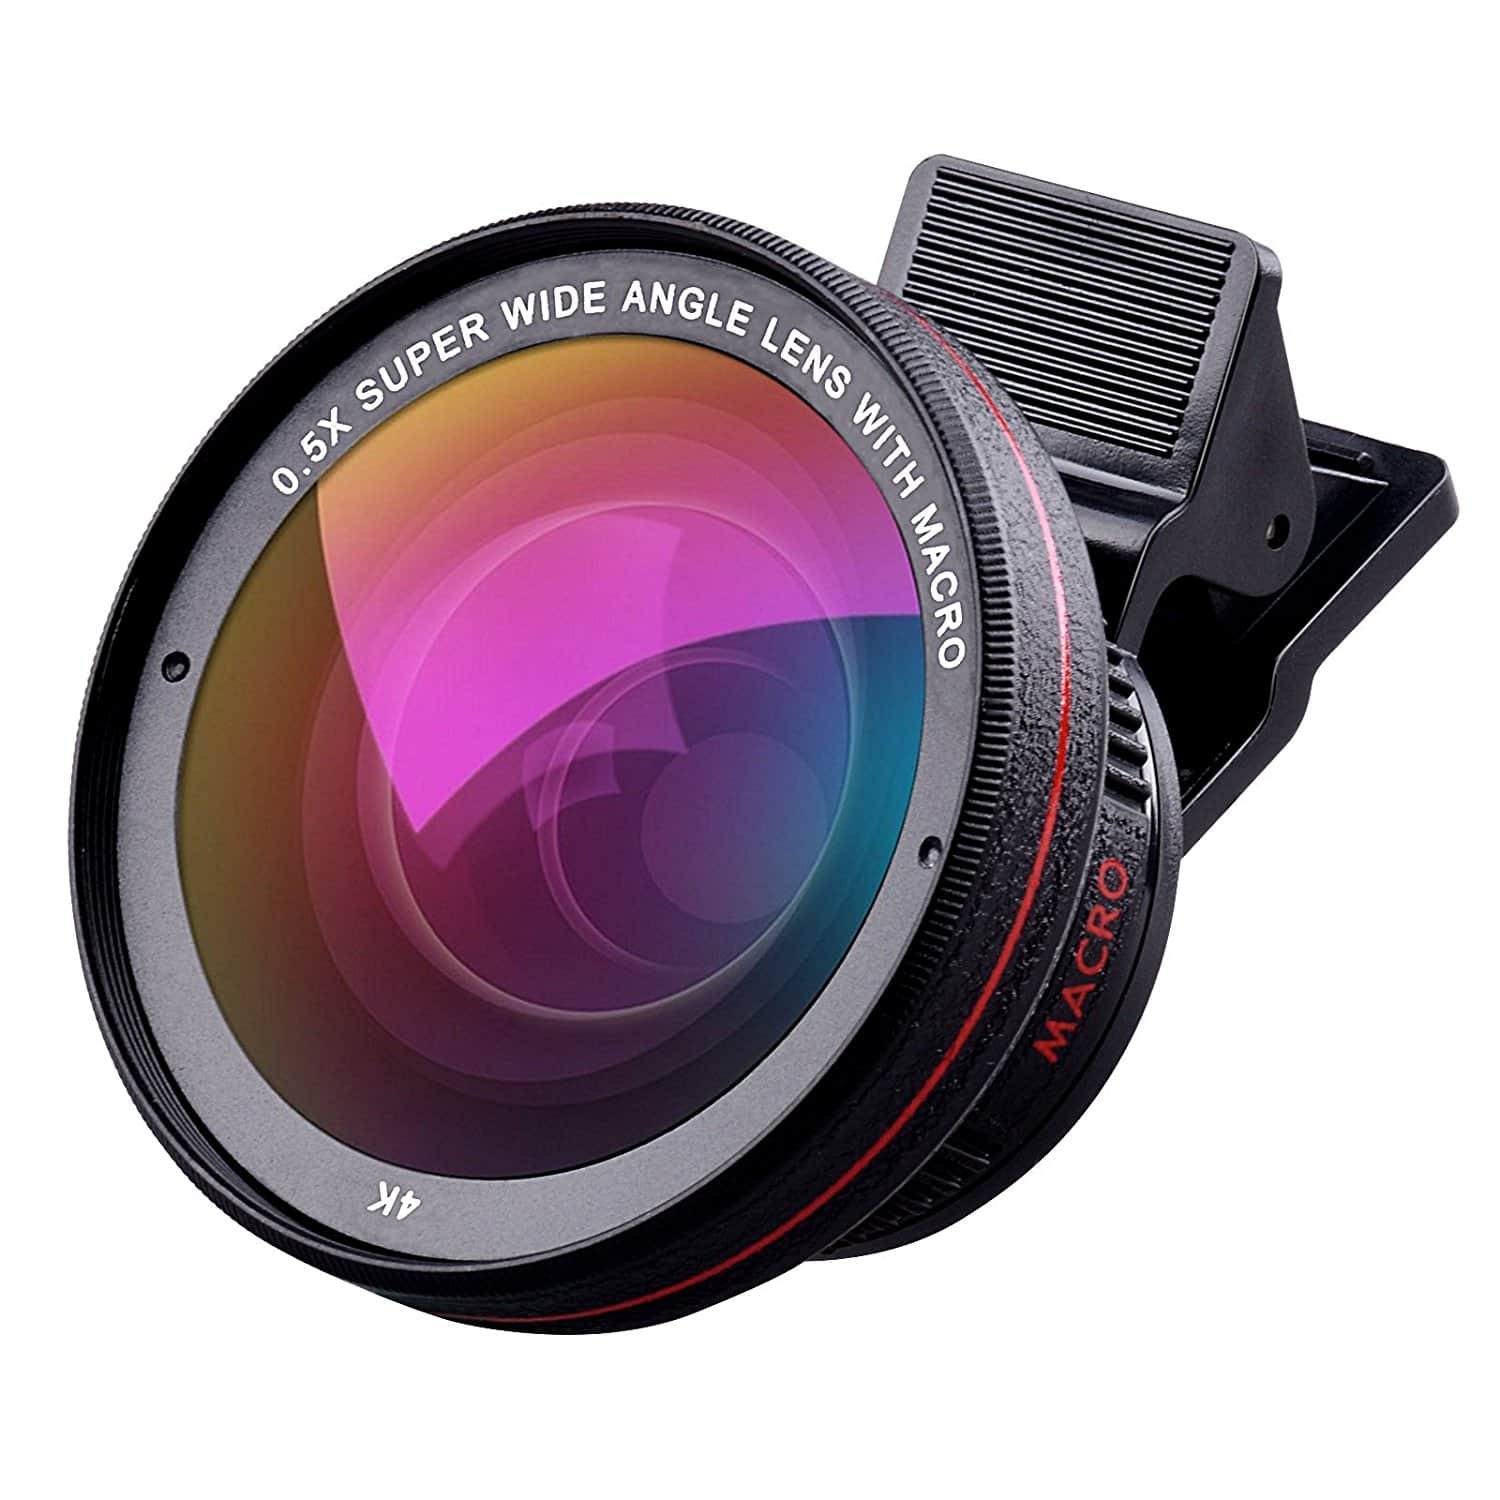 Cell Phone Camera Lens Kit 0.5X Super Wide Angle Lens + 15X Macro Lens for $14.49